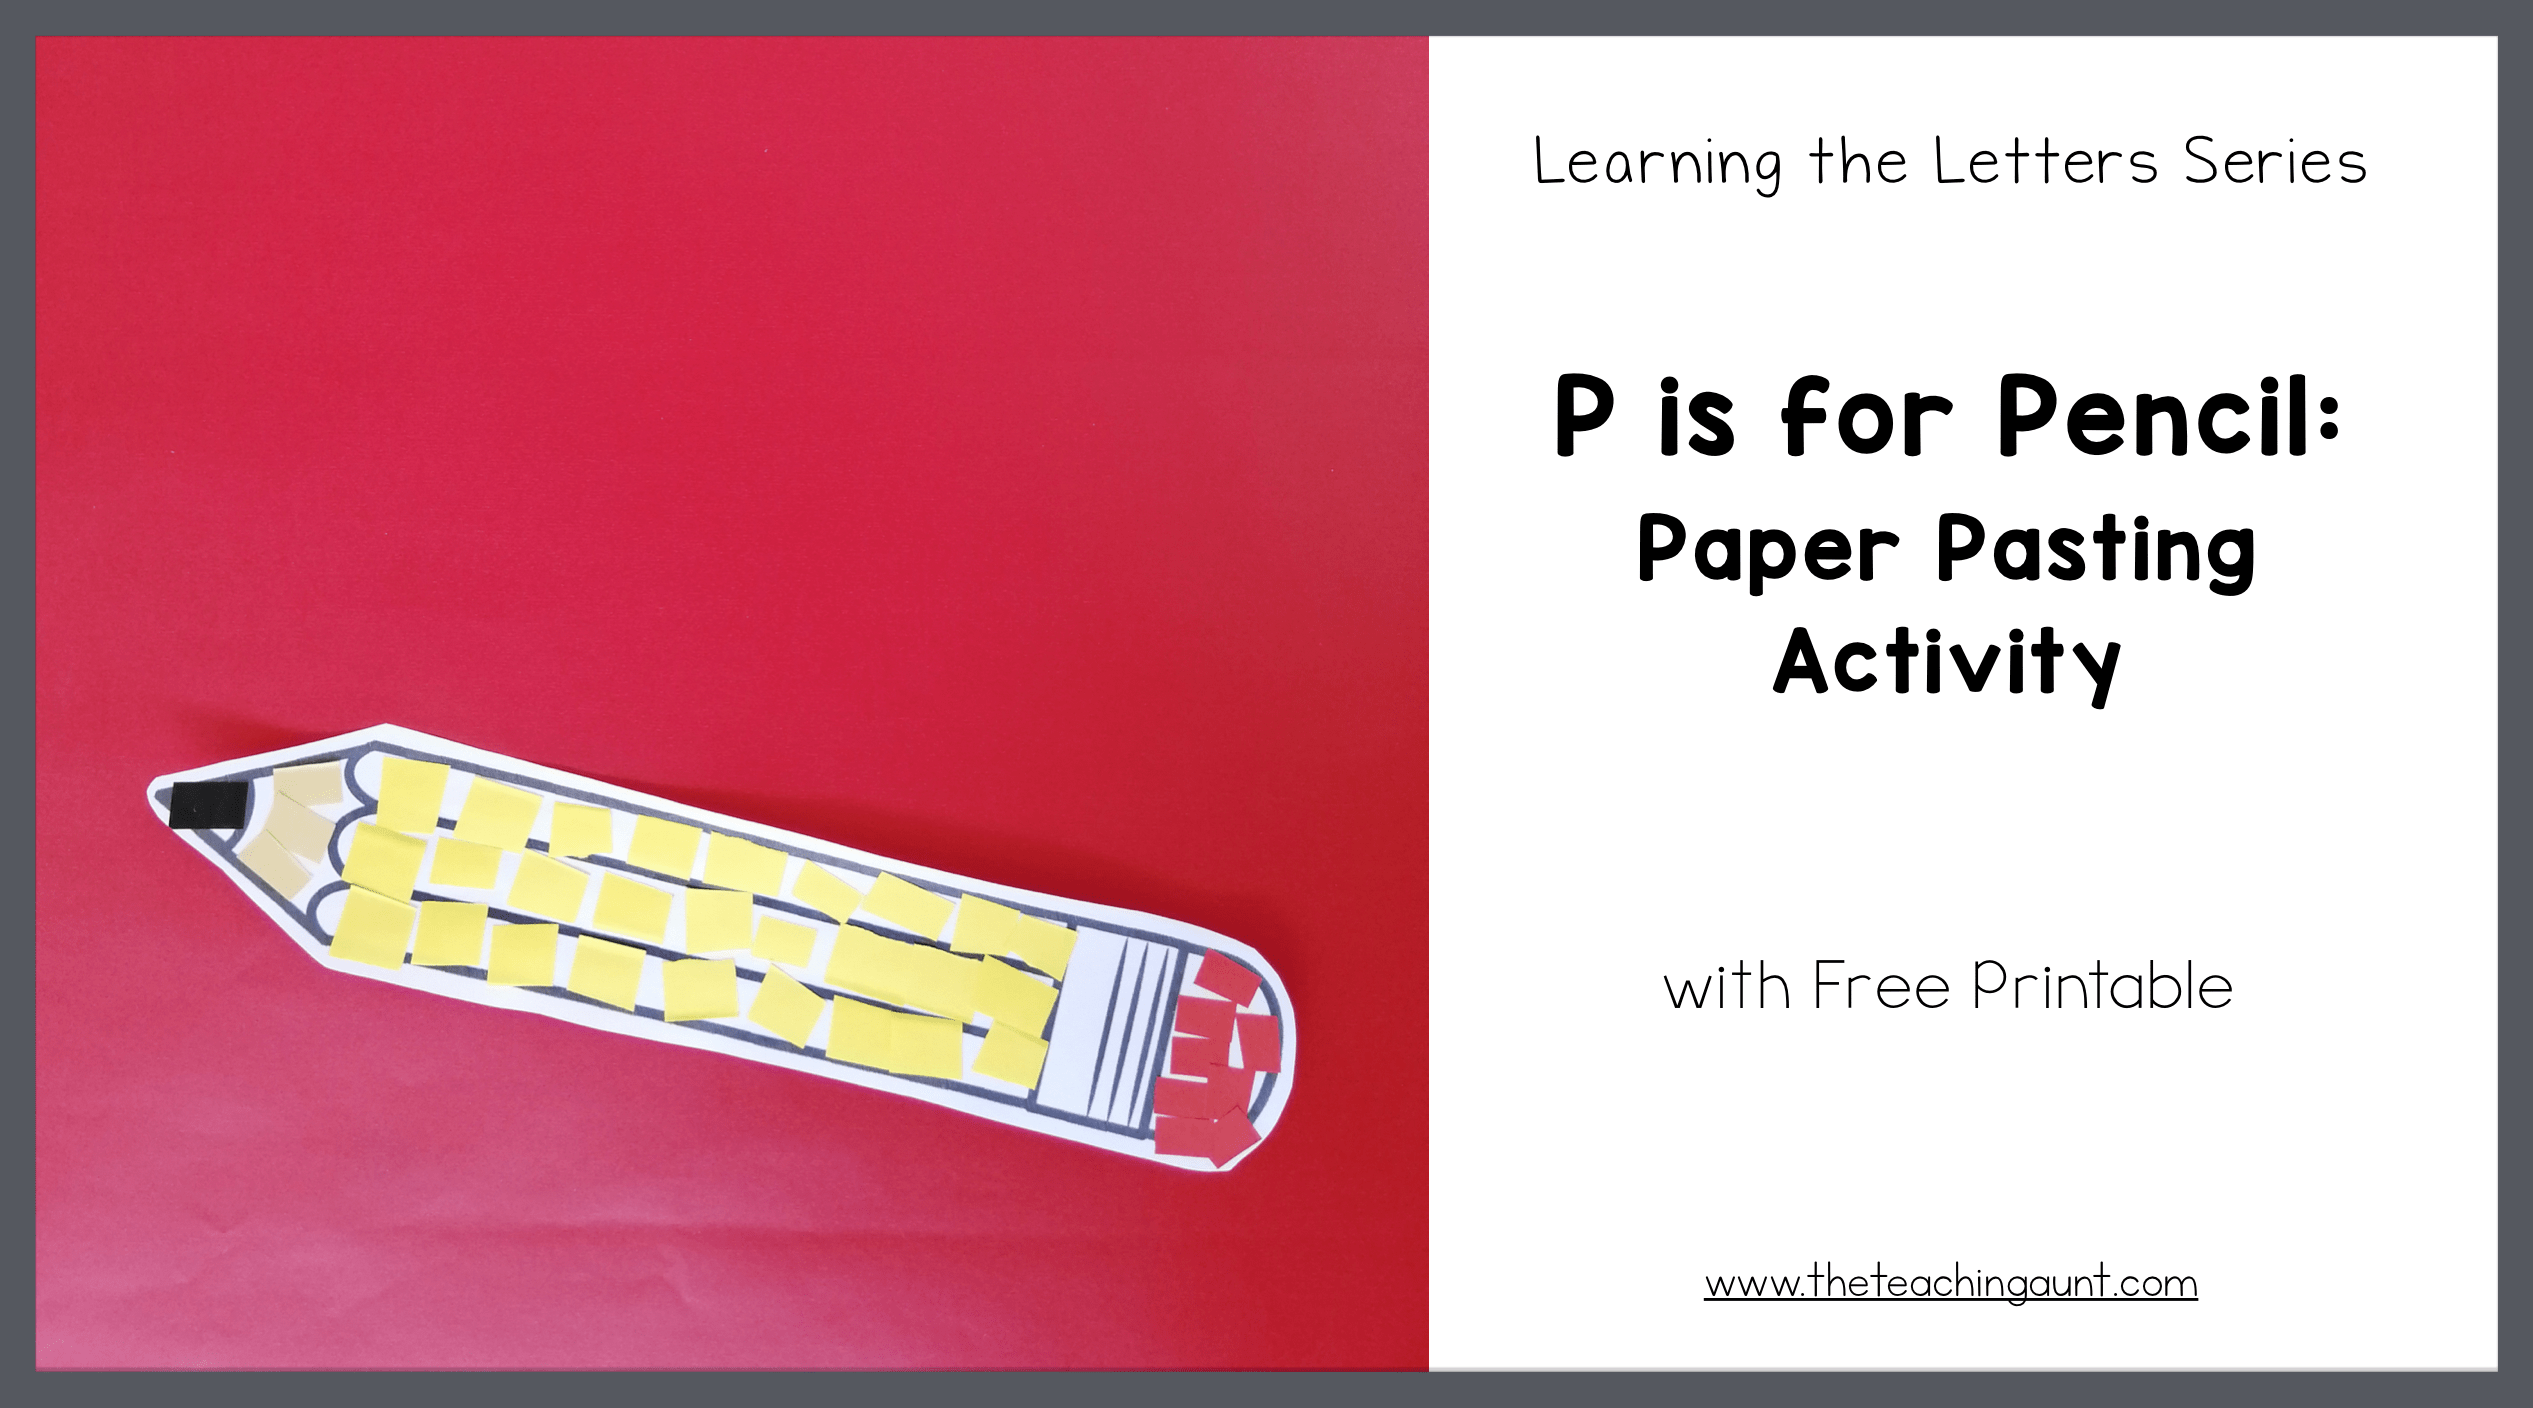 P is for Pencil: Paper Pasting Activity from The Teaching Aunt